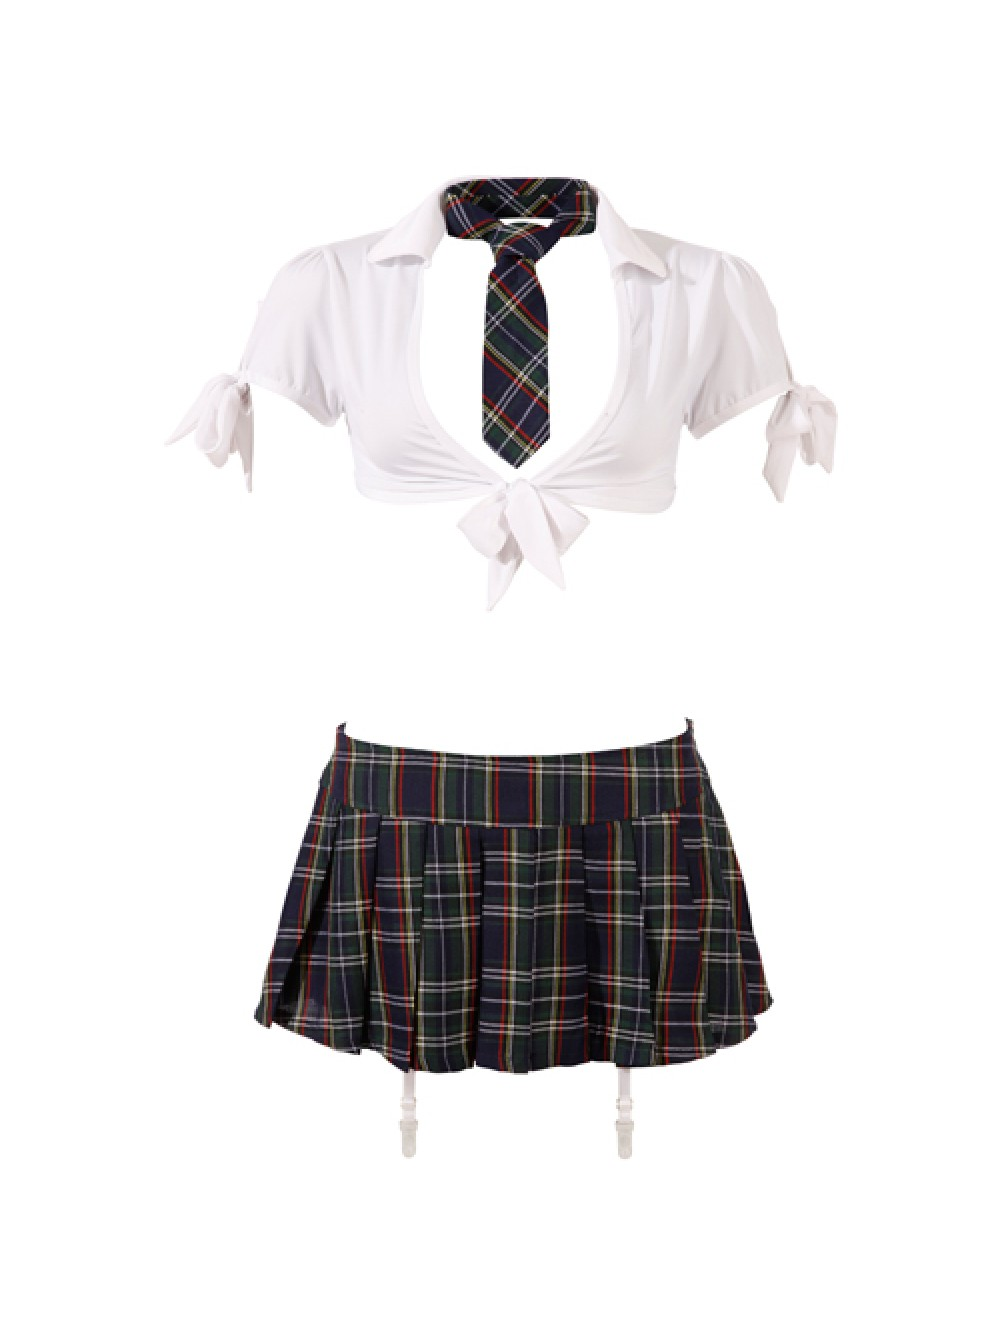 Cottelli Collection - 24702504030, Costume per bambine e ragazze, beige (tartan), Medium